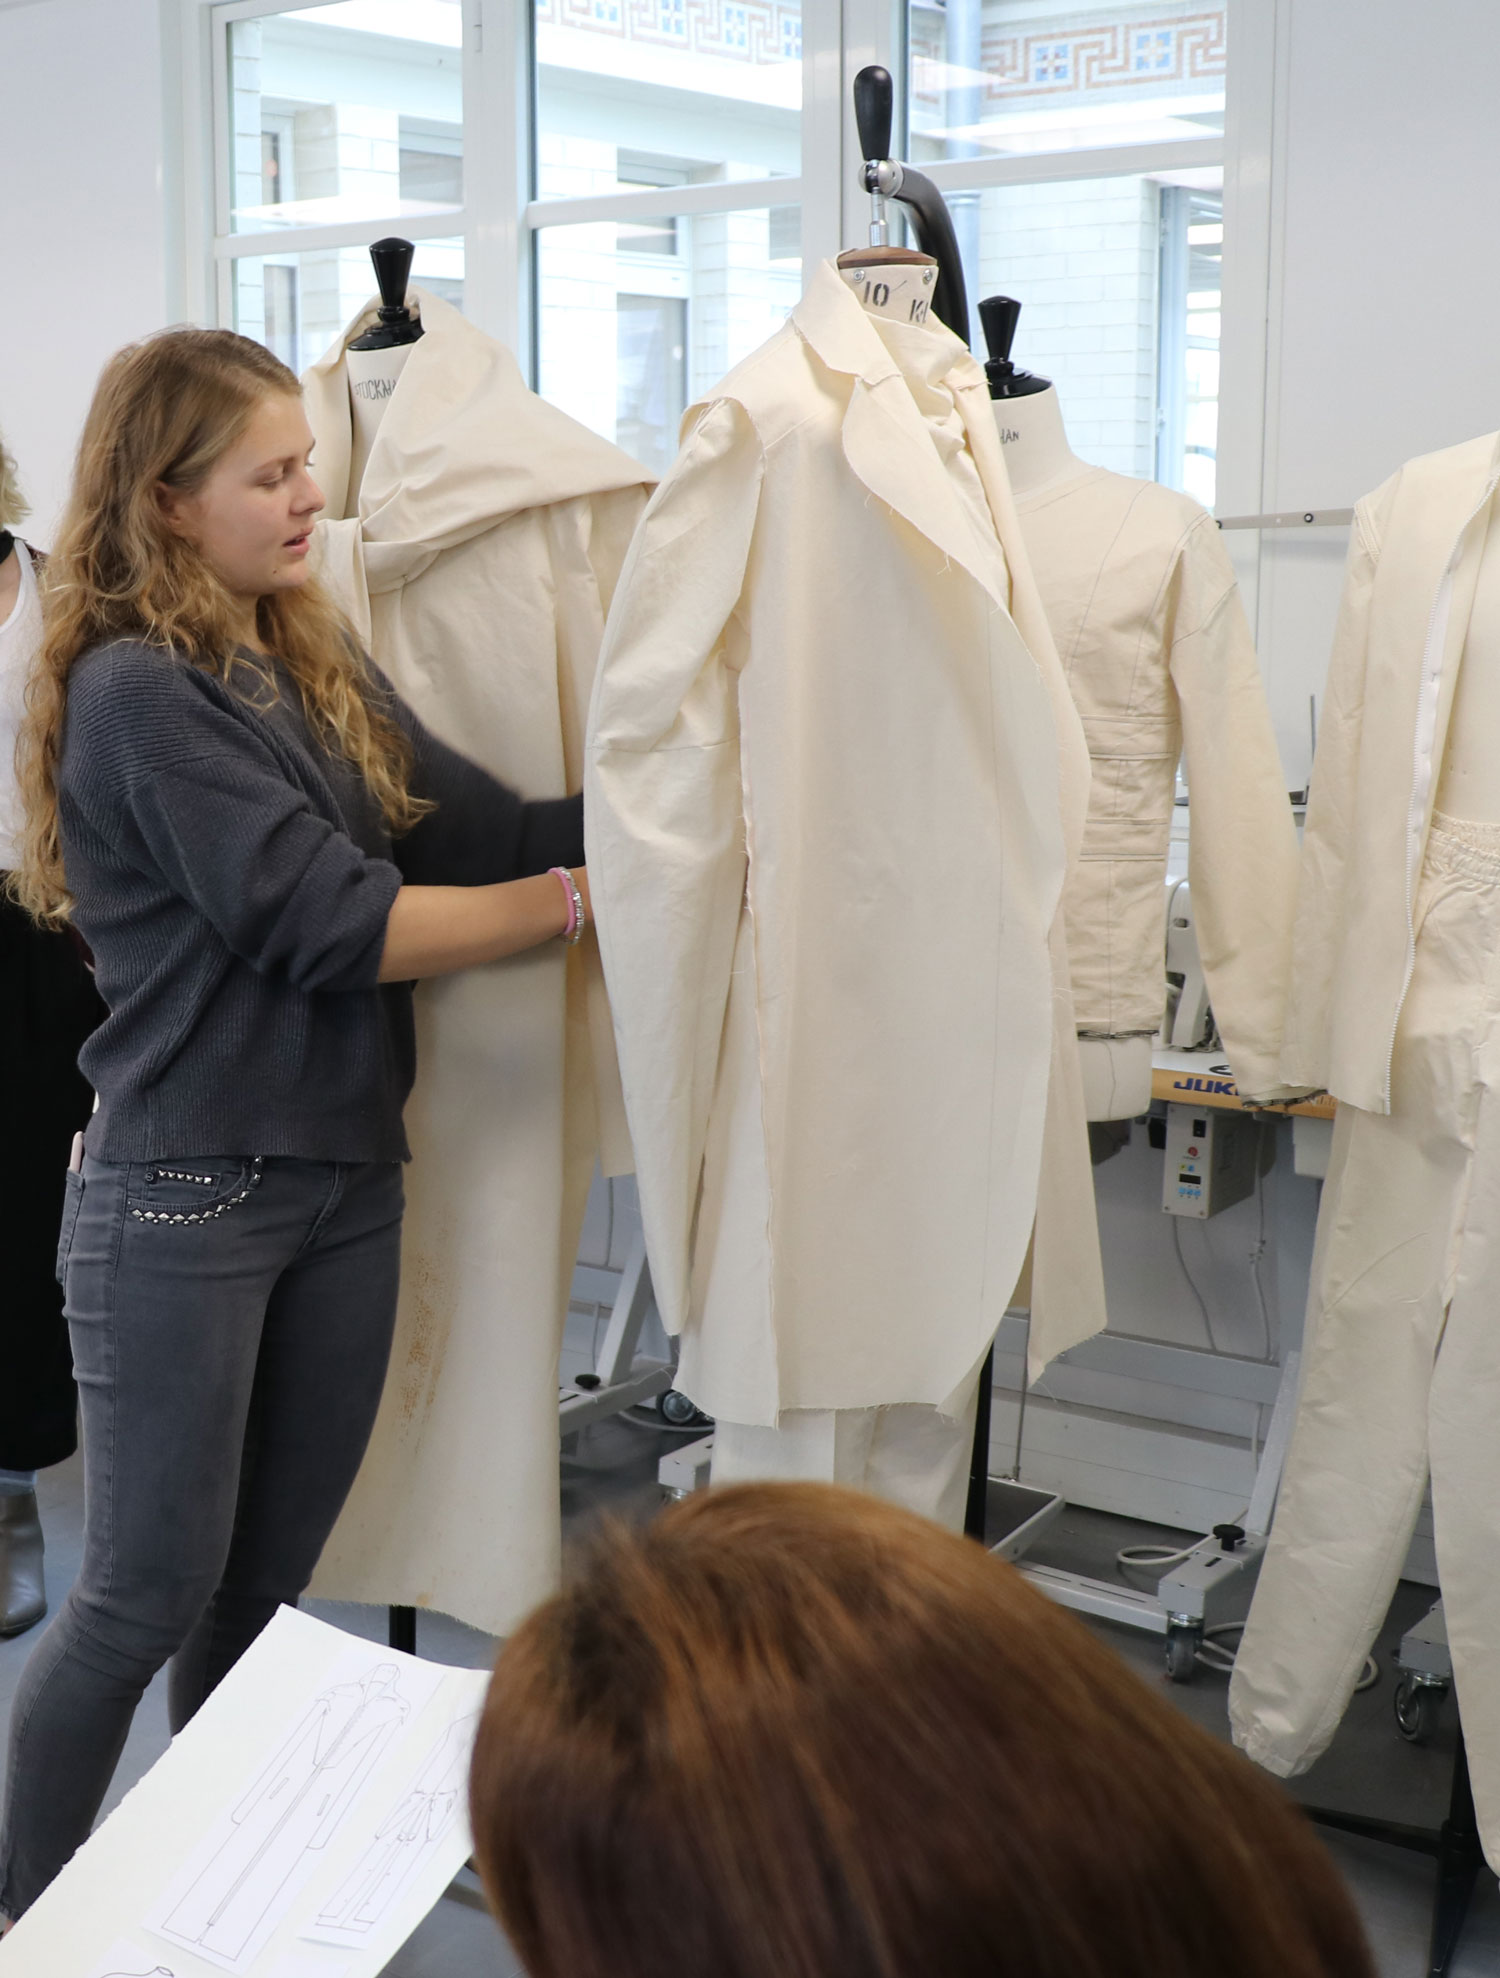 INSIDE THE CERRUTI-WOOLMARK PROJECT